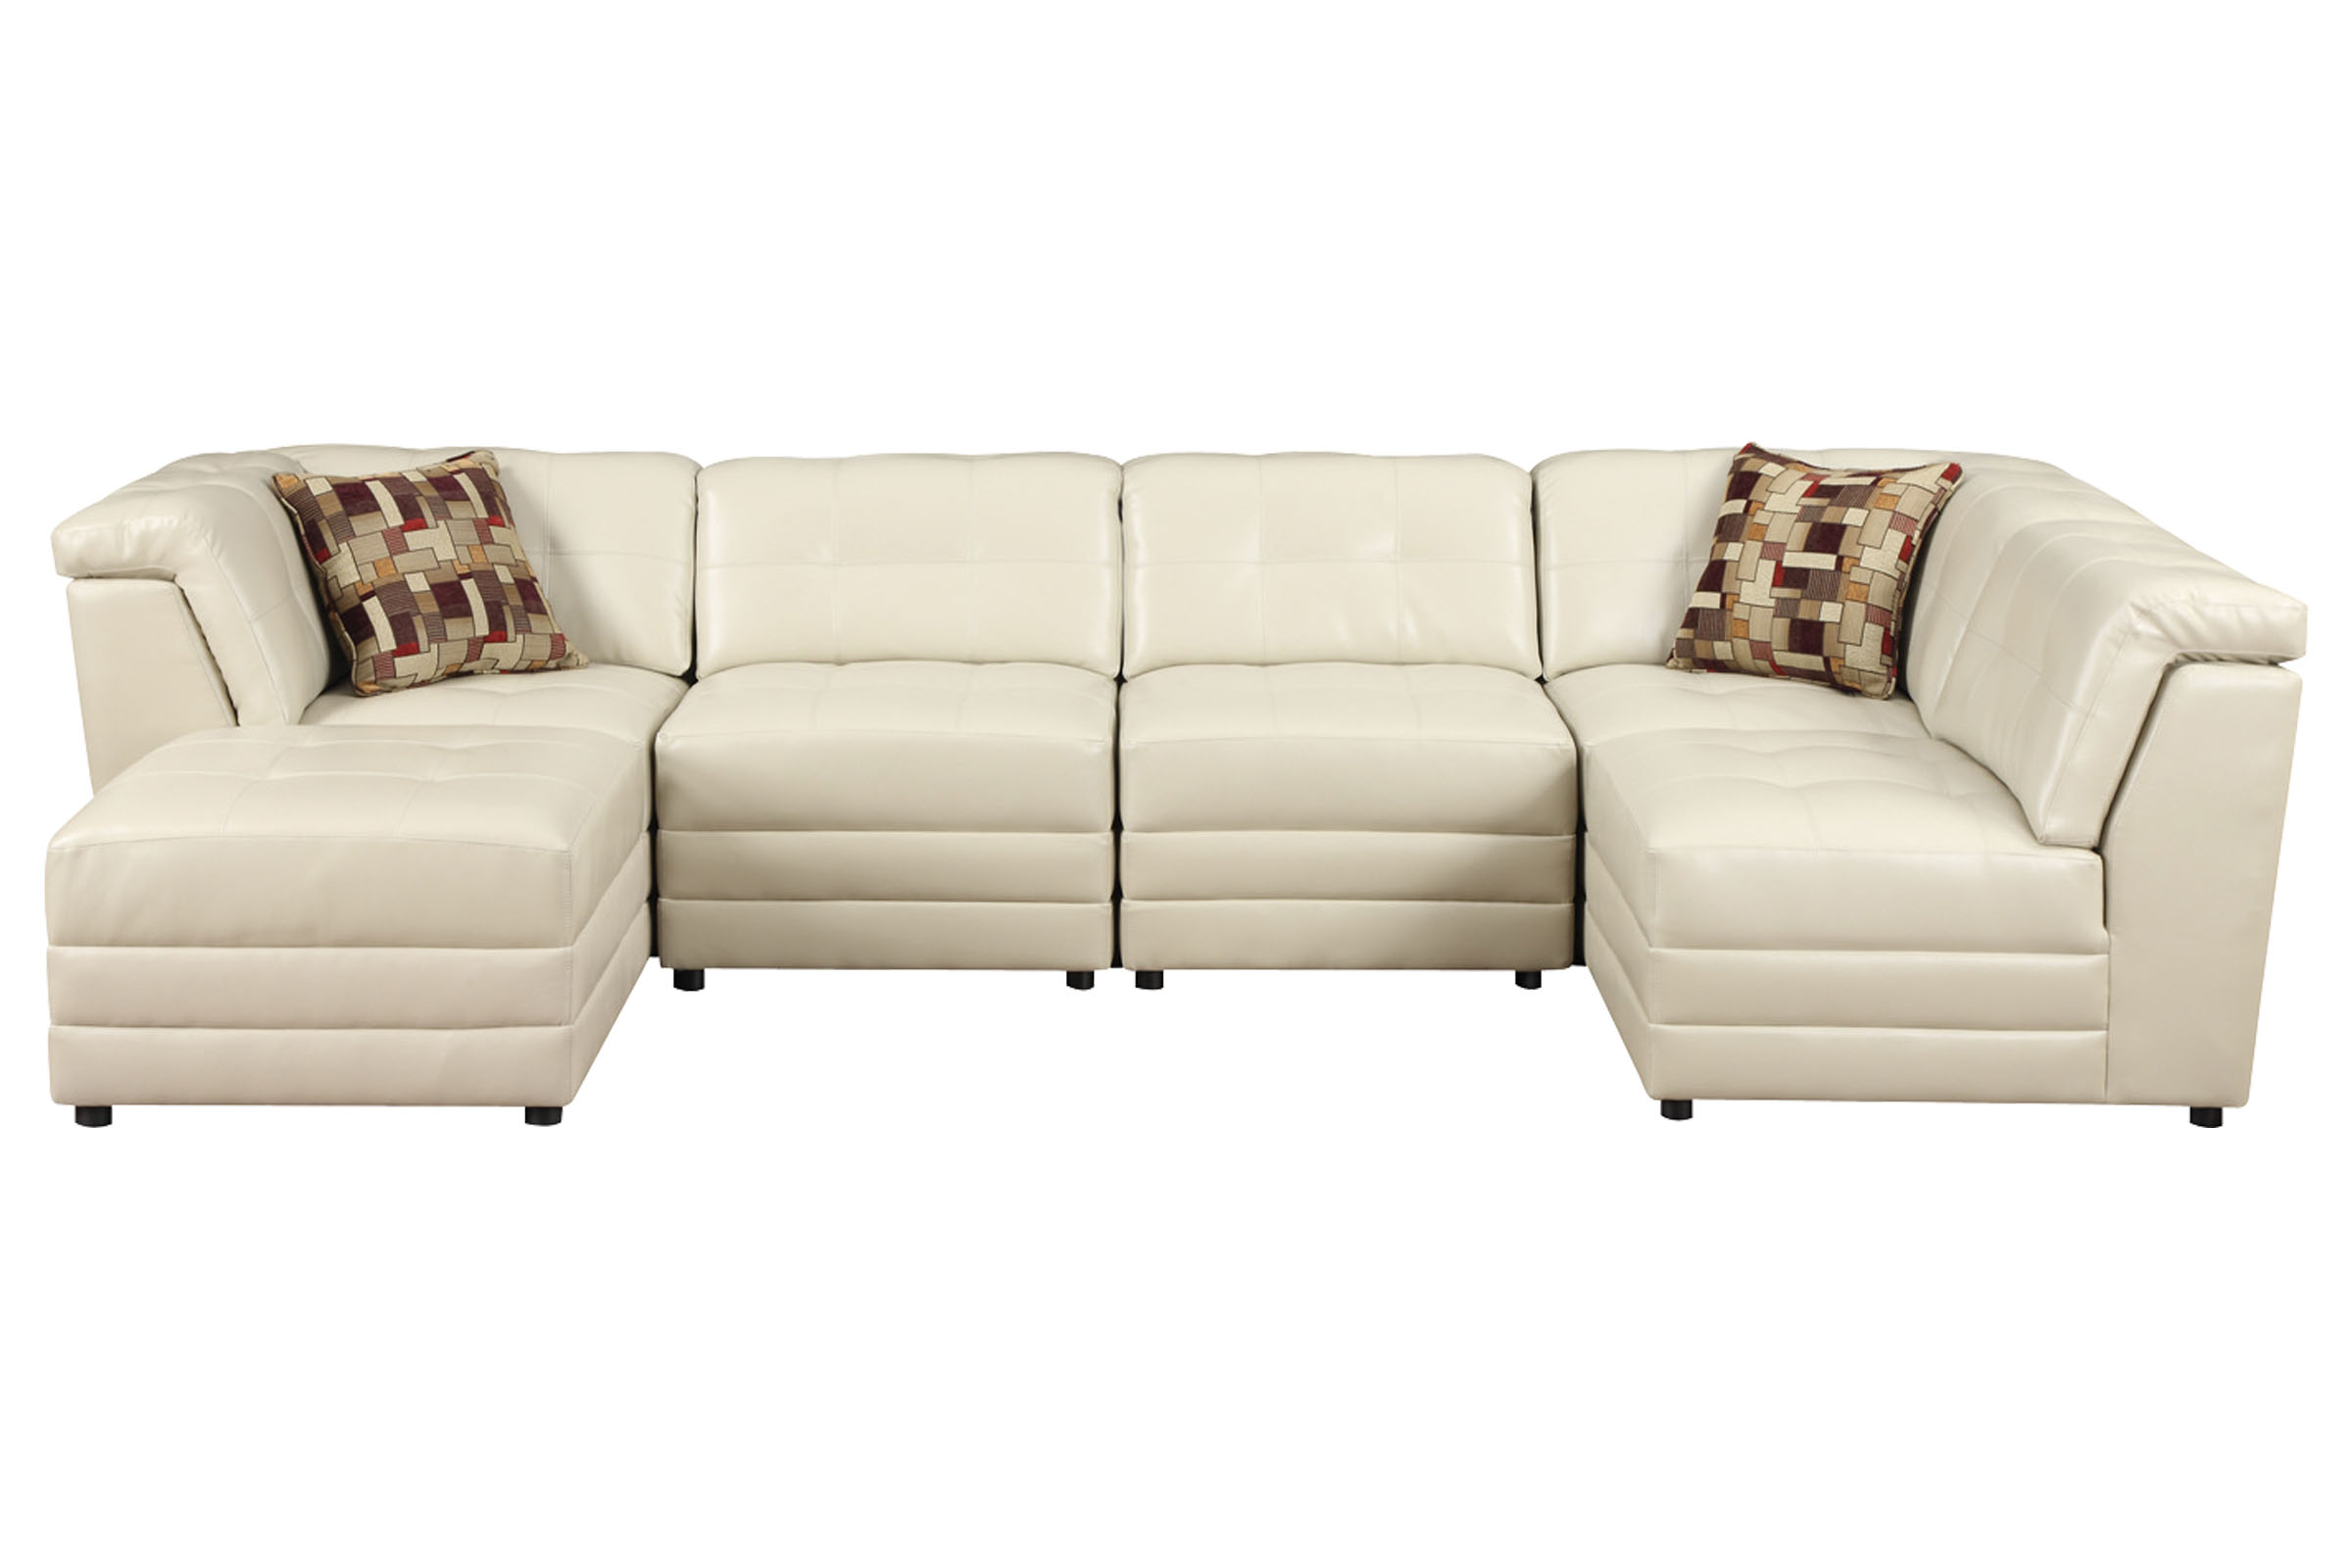 Featured Steal Calisto 7-Piece Bonded Leather Sectional Now $2029.99 $1623.99 + We Pay Your Tax  sc 1 st  Gardner-White : gardner white sectionals - Sectionals, Sofas & Couches